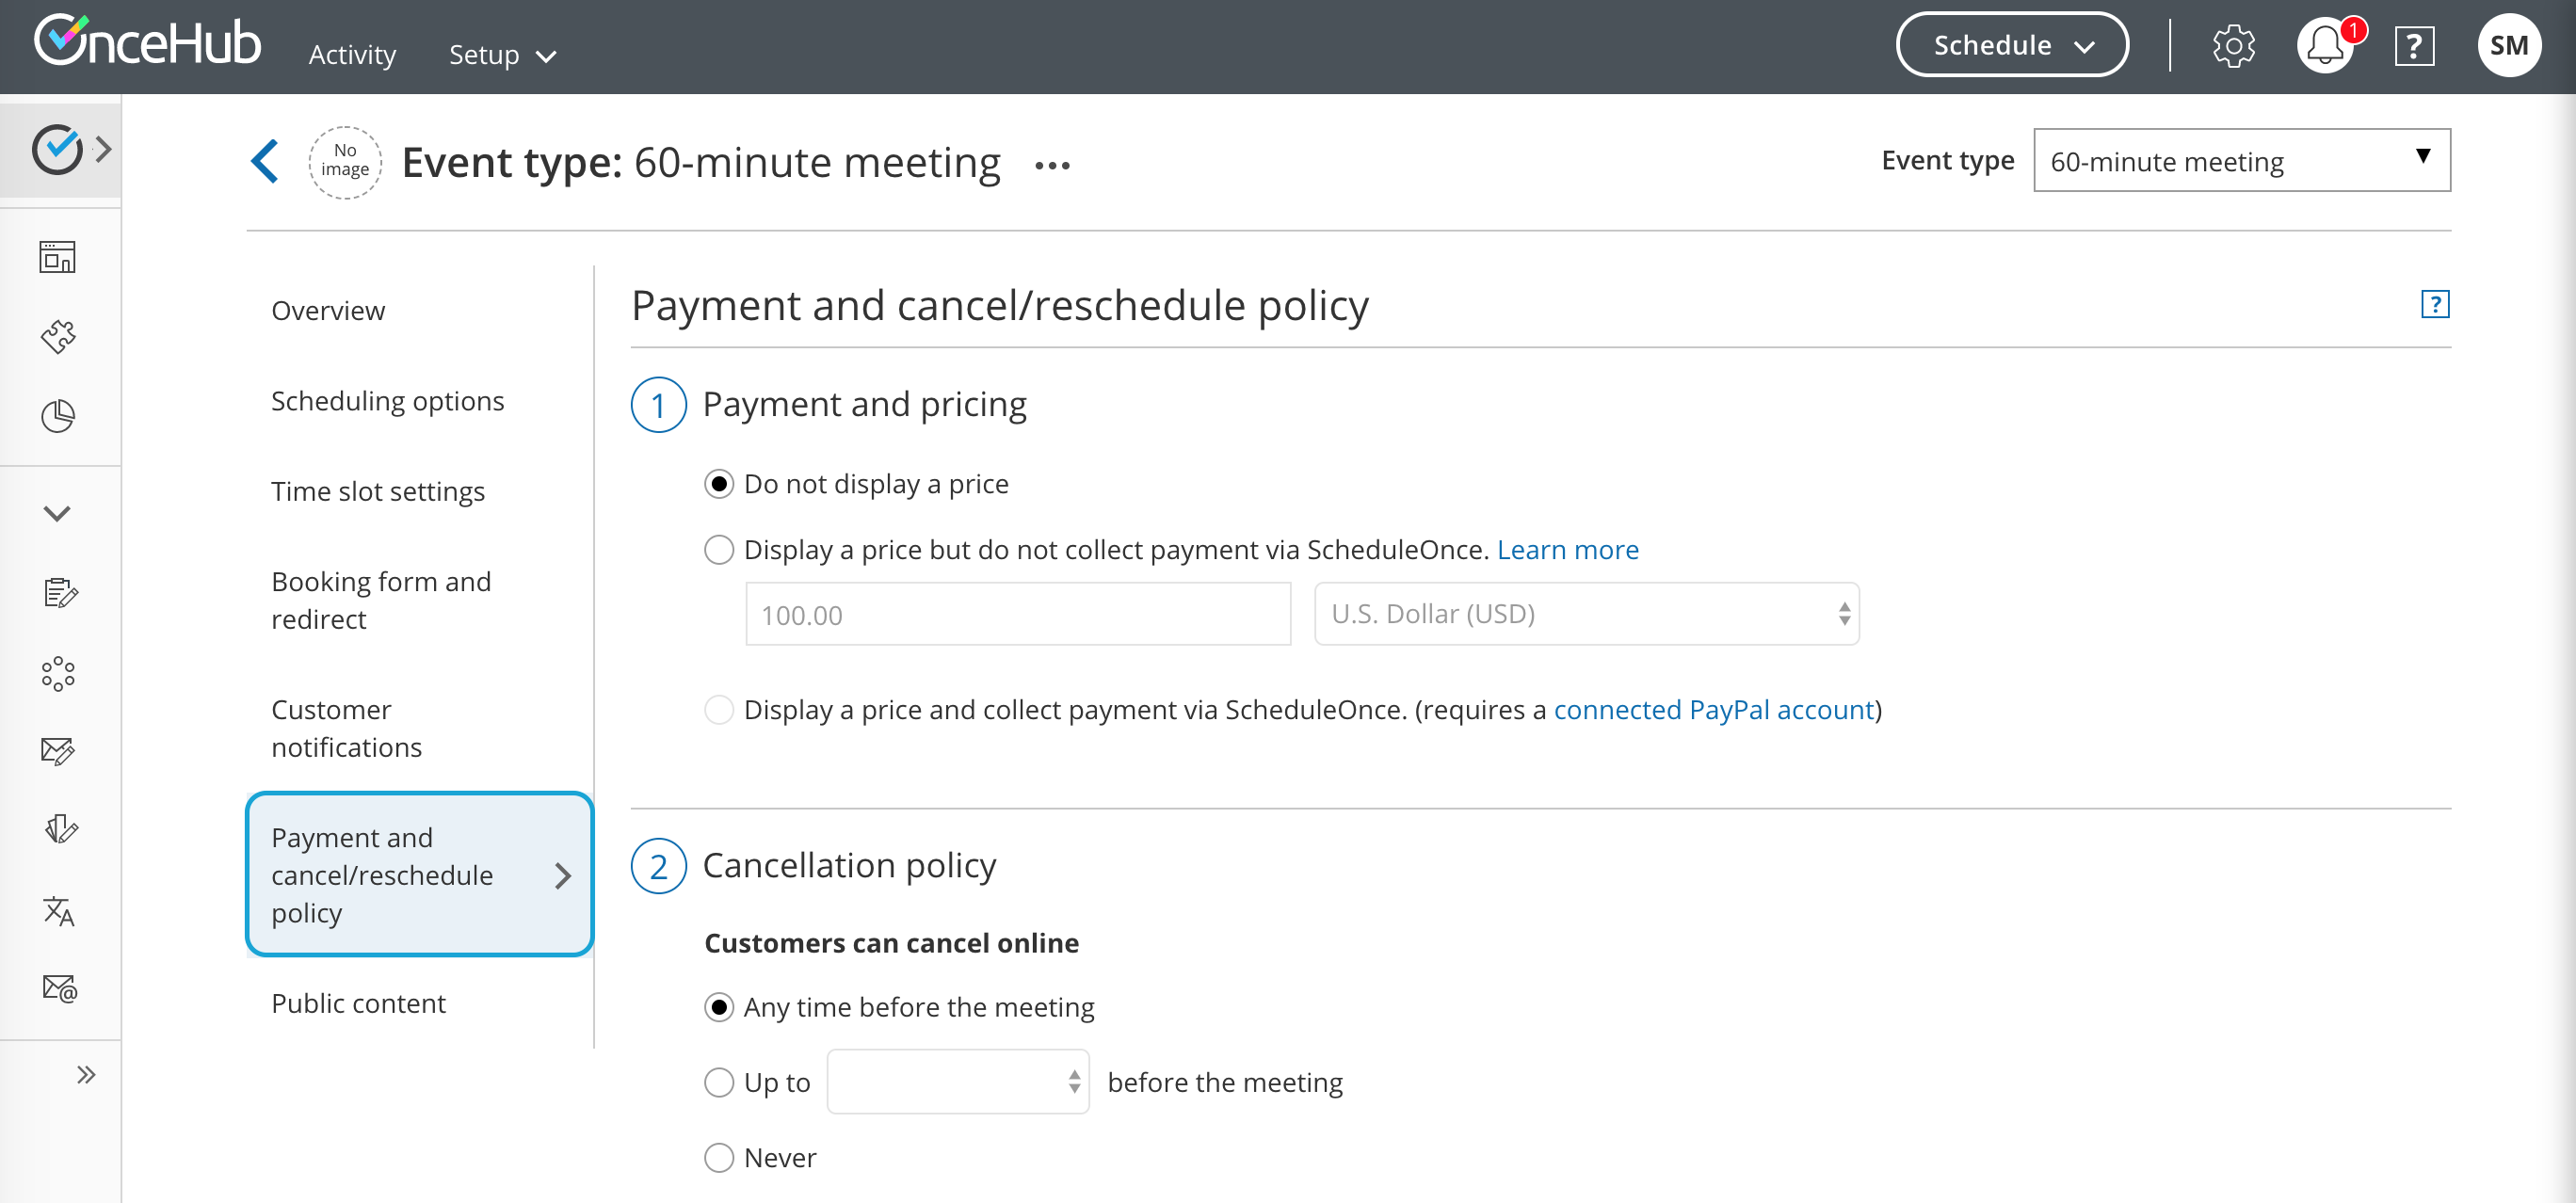 Figure 1: Payment and cancel/reschedule policy